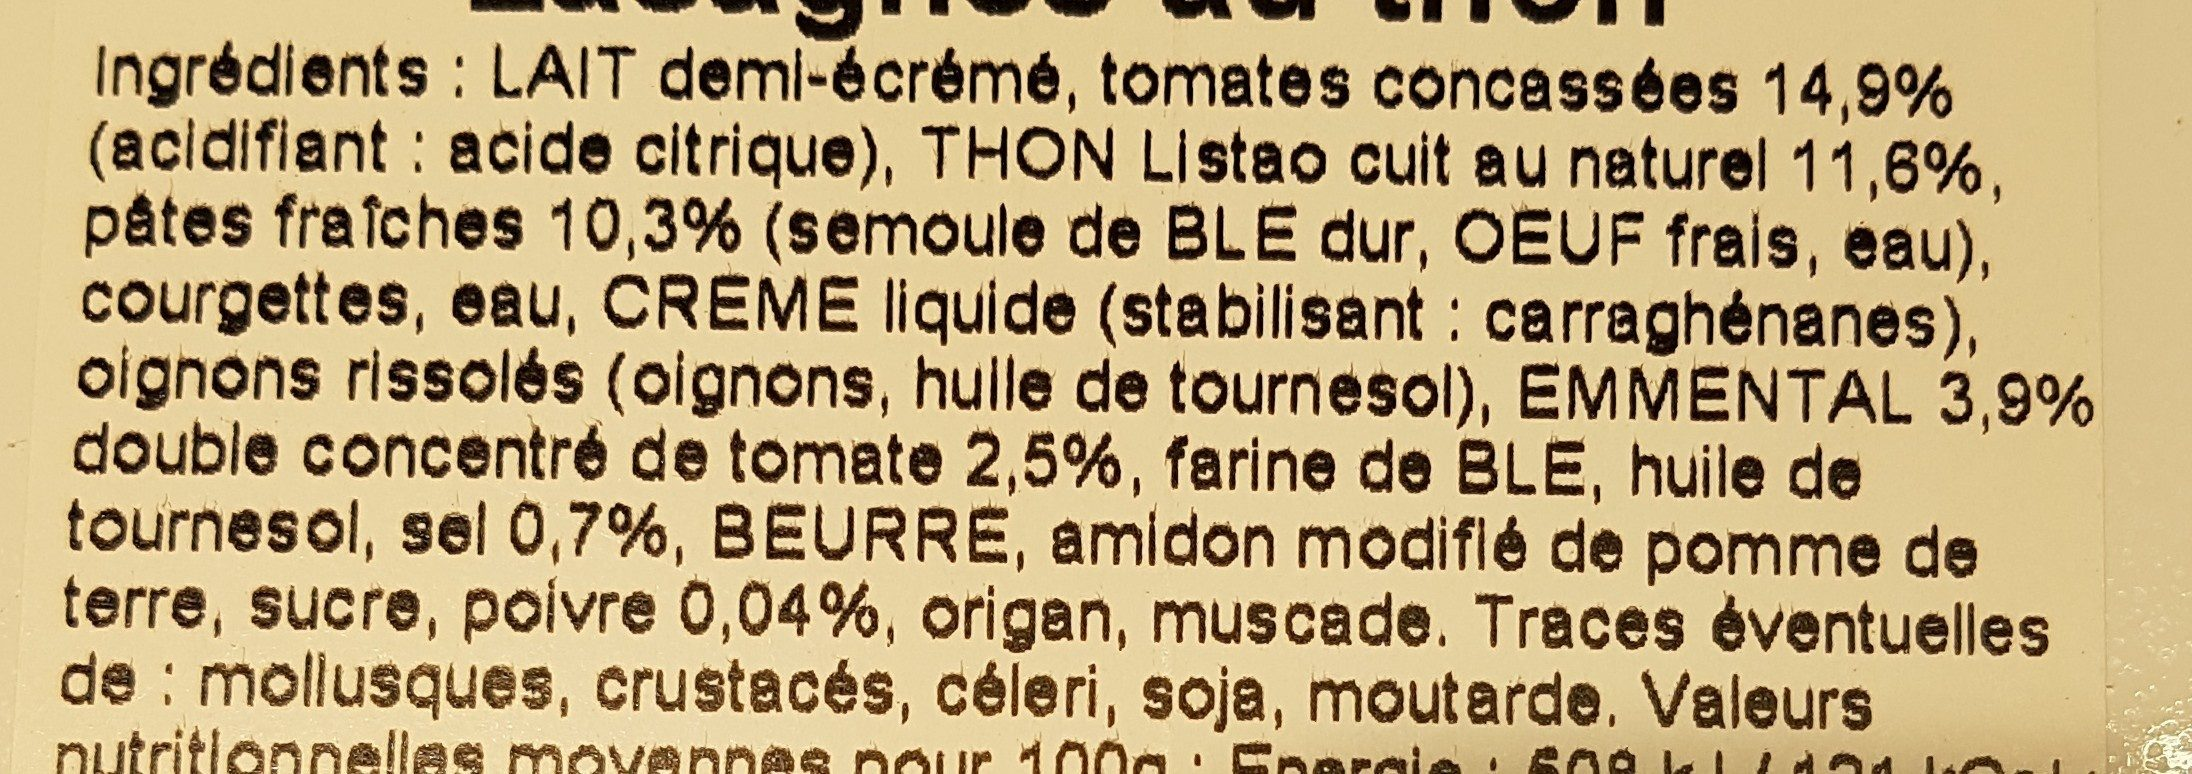 Les Lasagnes au Thon - Ingredients